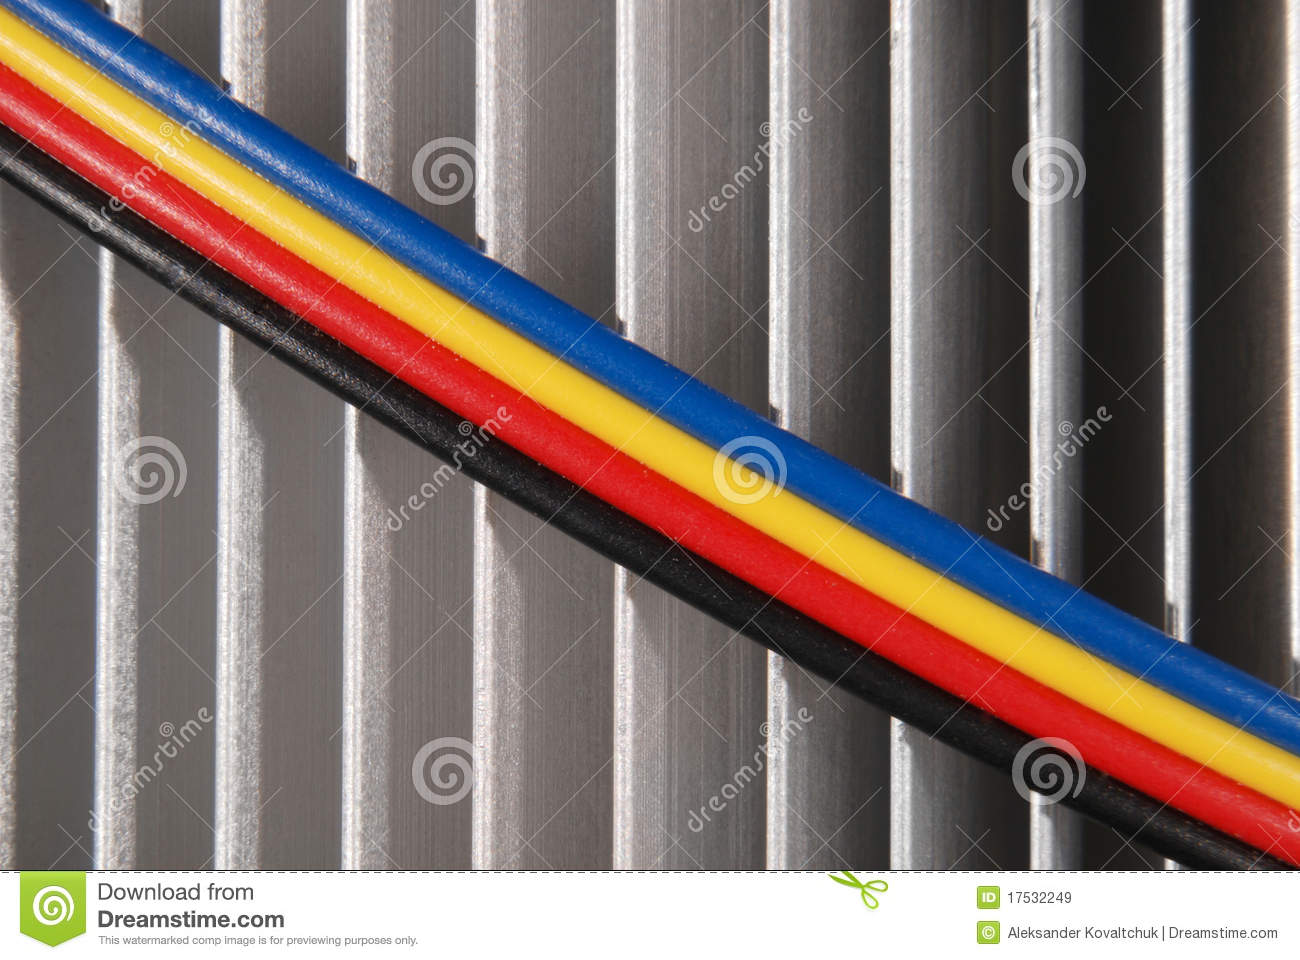 Wires Dark Blue Red Yellow And Black Stock Image - Image of close ...